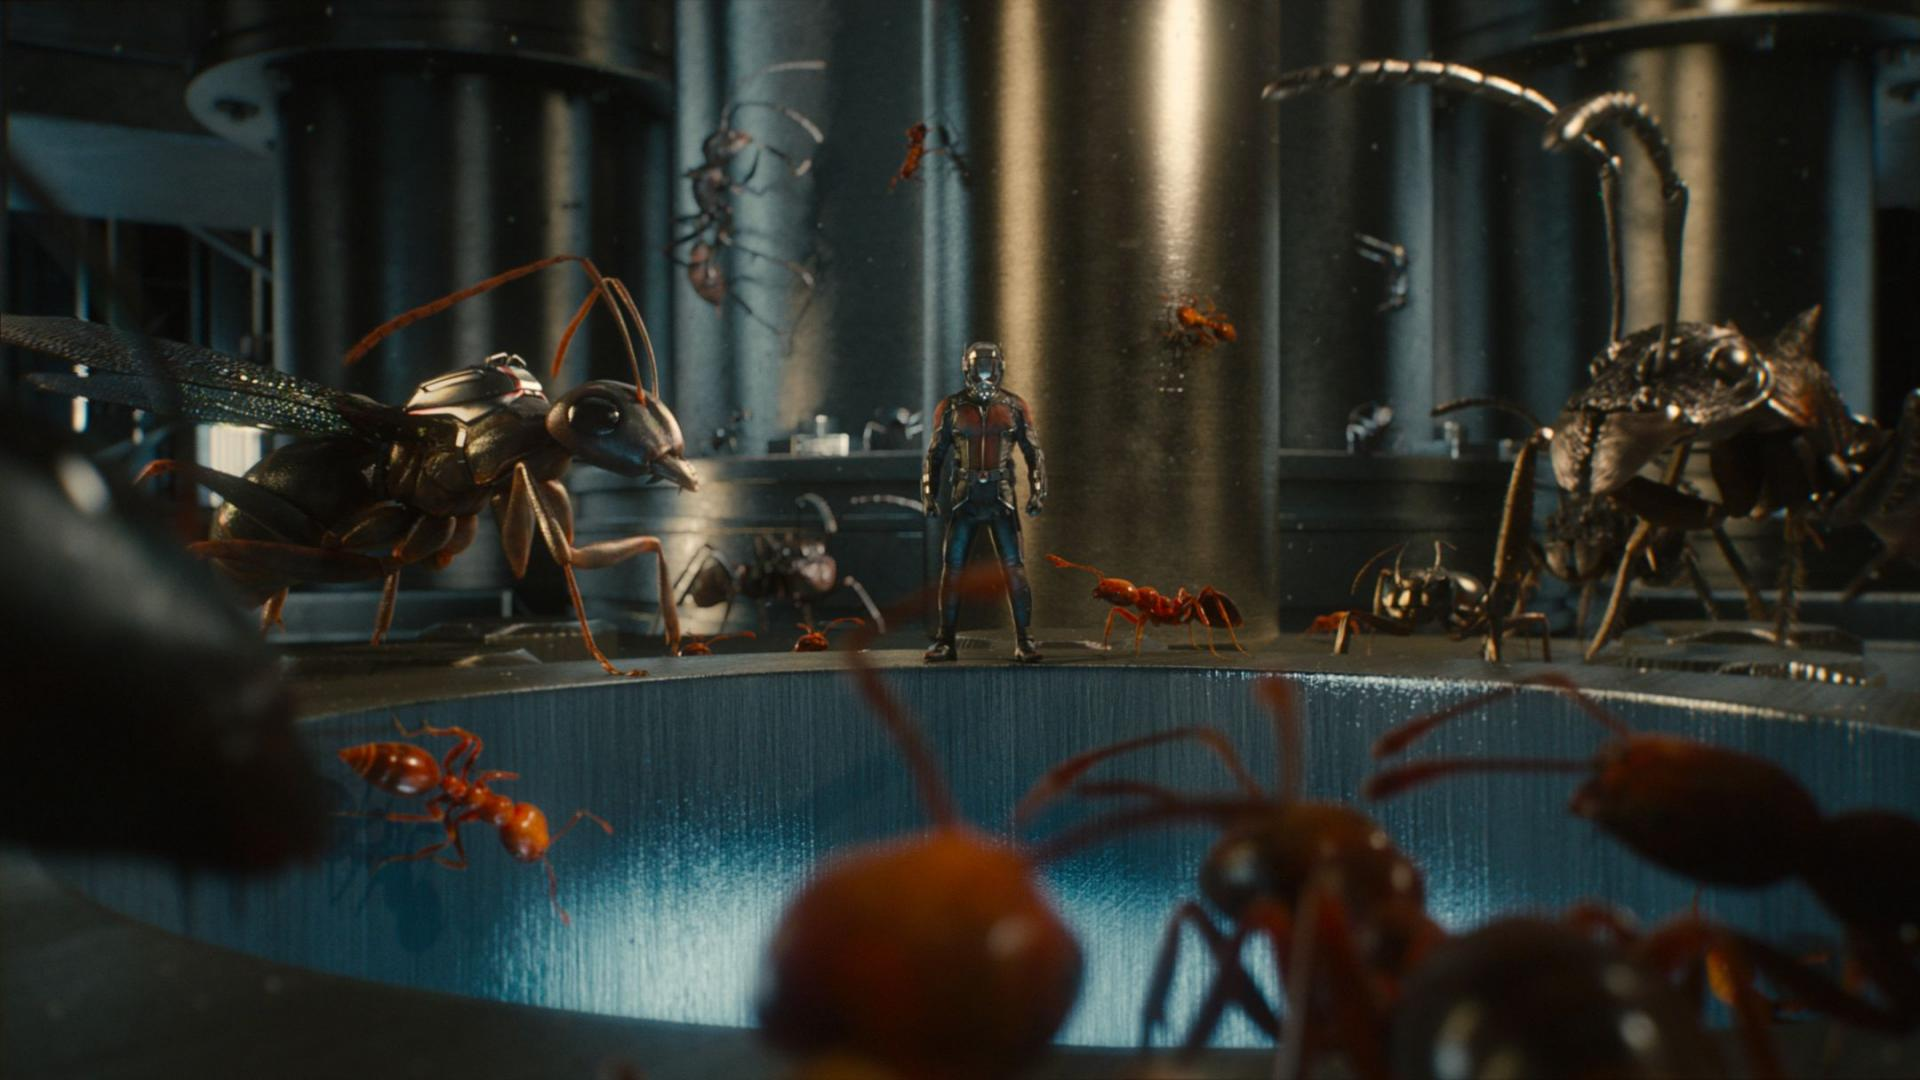 Ant man screenshot 1